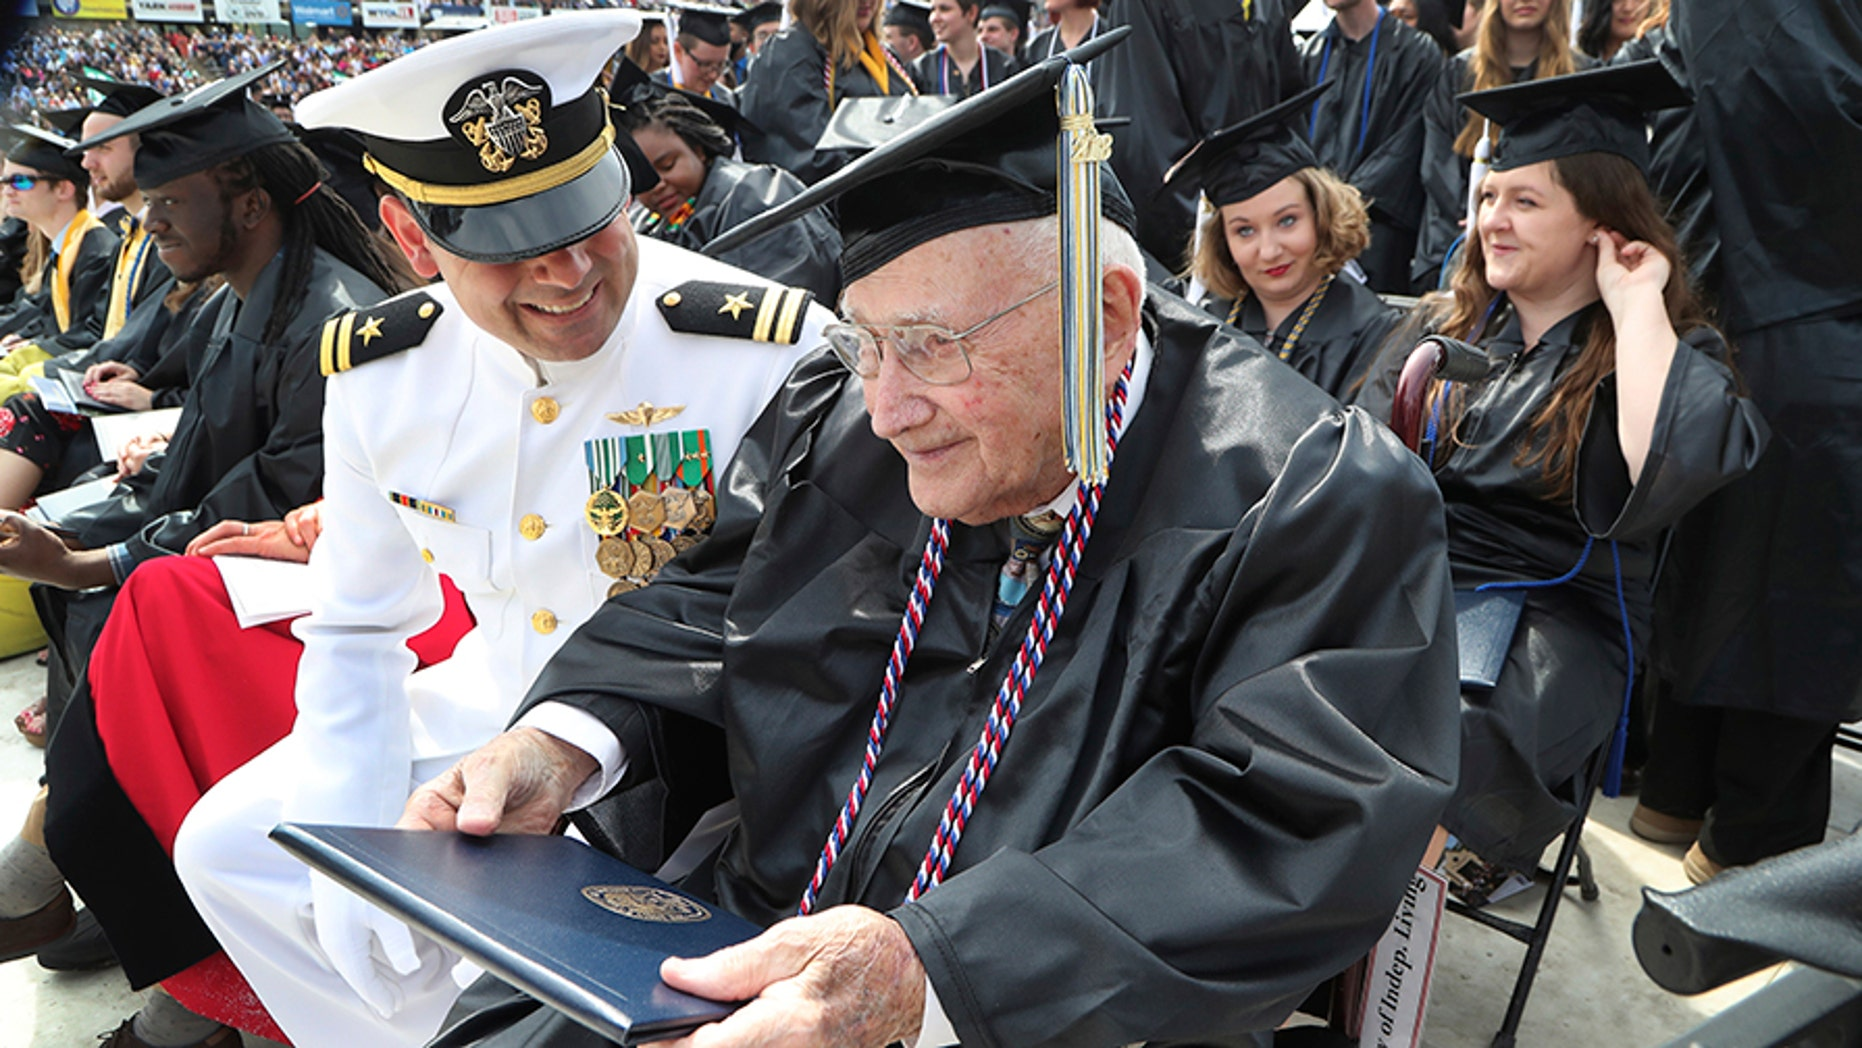 World War II veteran Bob Barger, assisted by Haraz Ghanbari, University of Toledo director of military and veteran affairs, left, smiles after receiving his diploma at the university's commencement ceremony on Saturday in Toledo, Ohio.